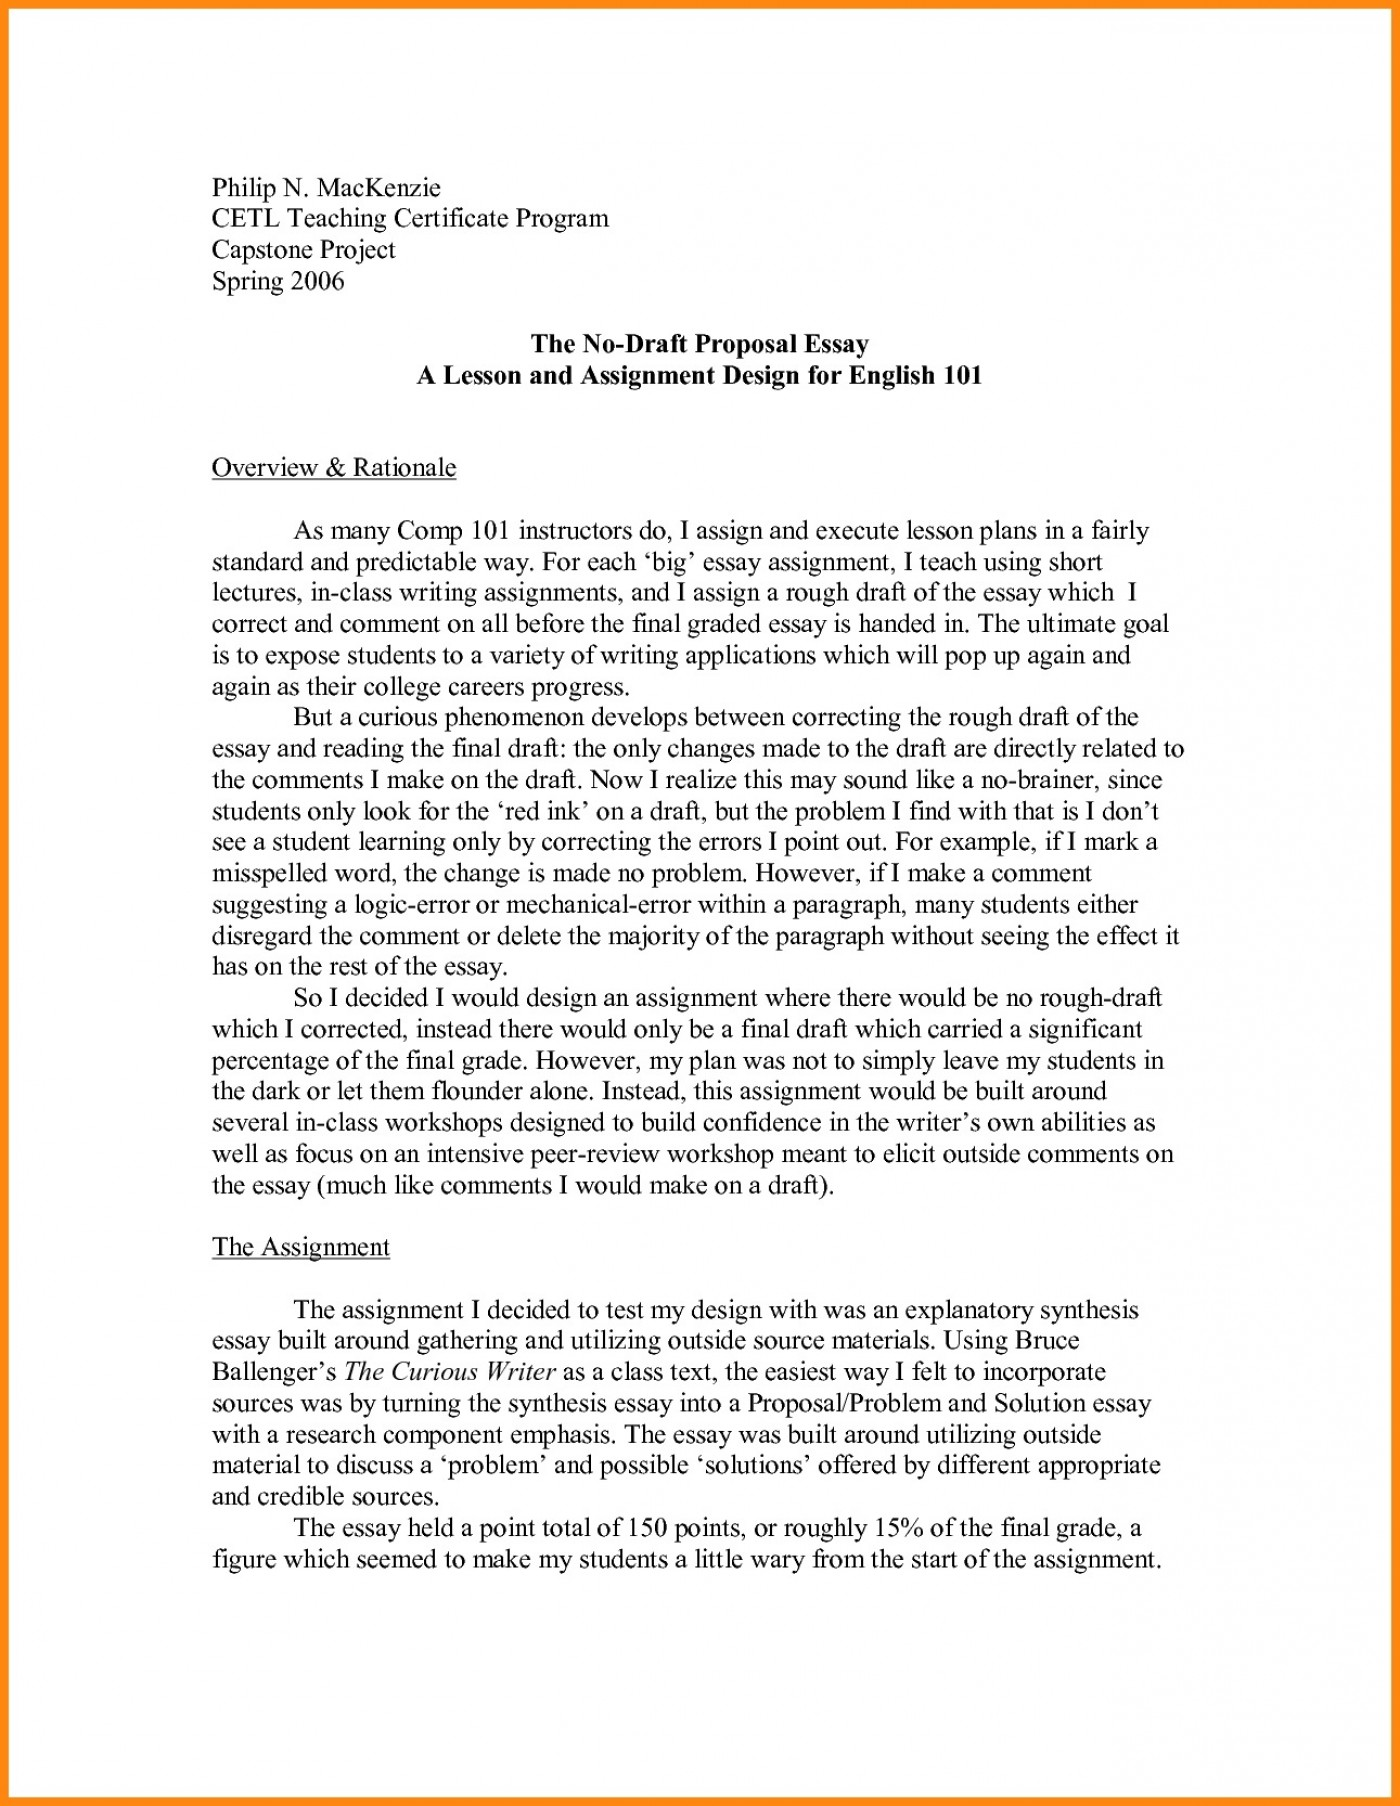 019 Research Paper Papers Topics For Finance Topic Proposal Example Essay At Phenomenal Best 2019 Sample About Education Term In Computer Science 1400